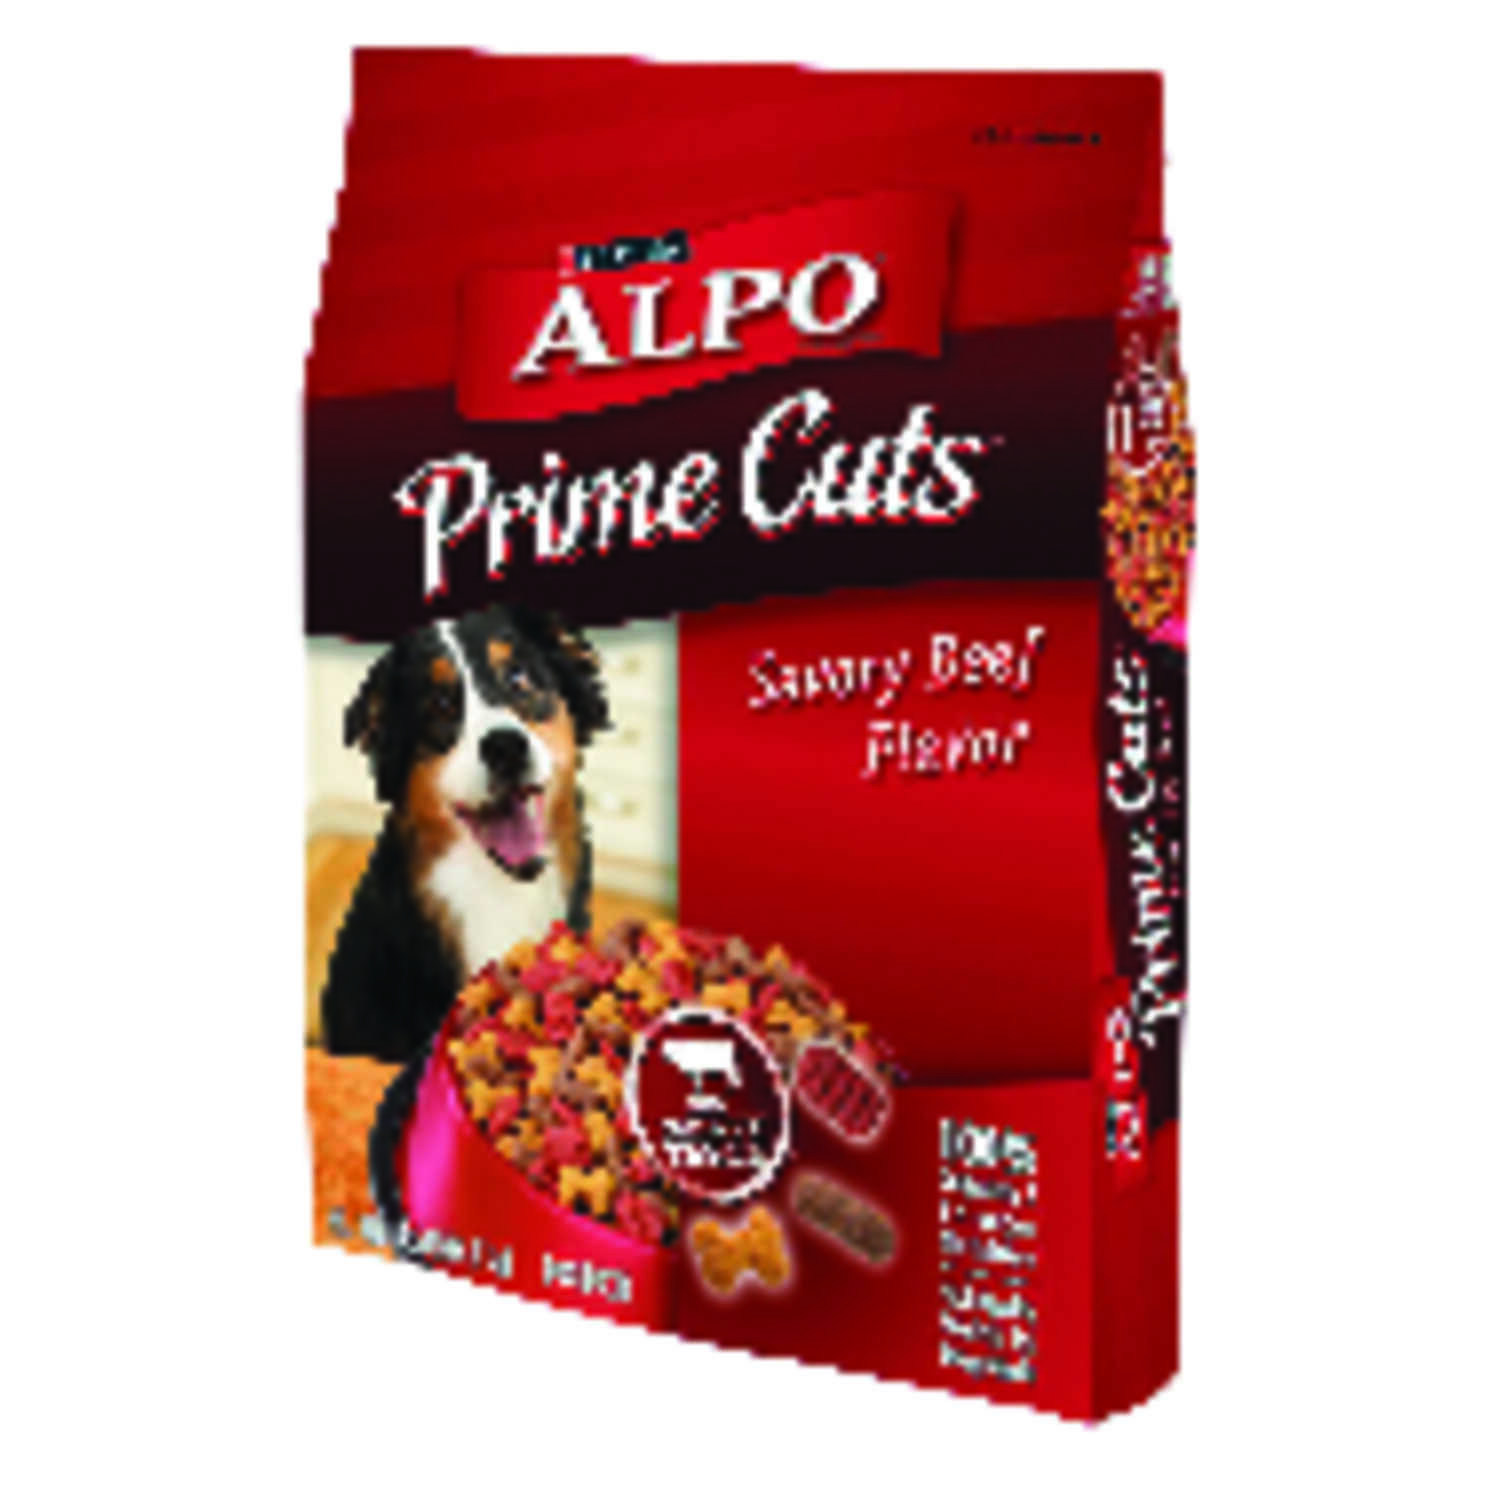 Purina  Alpo Prime Cuts  Savory Beef  Dry  Dog  Food  2